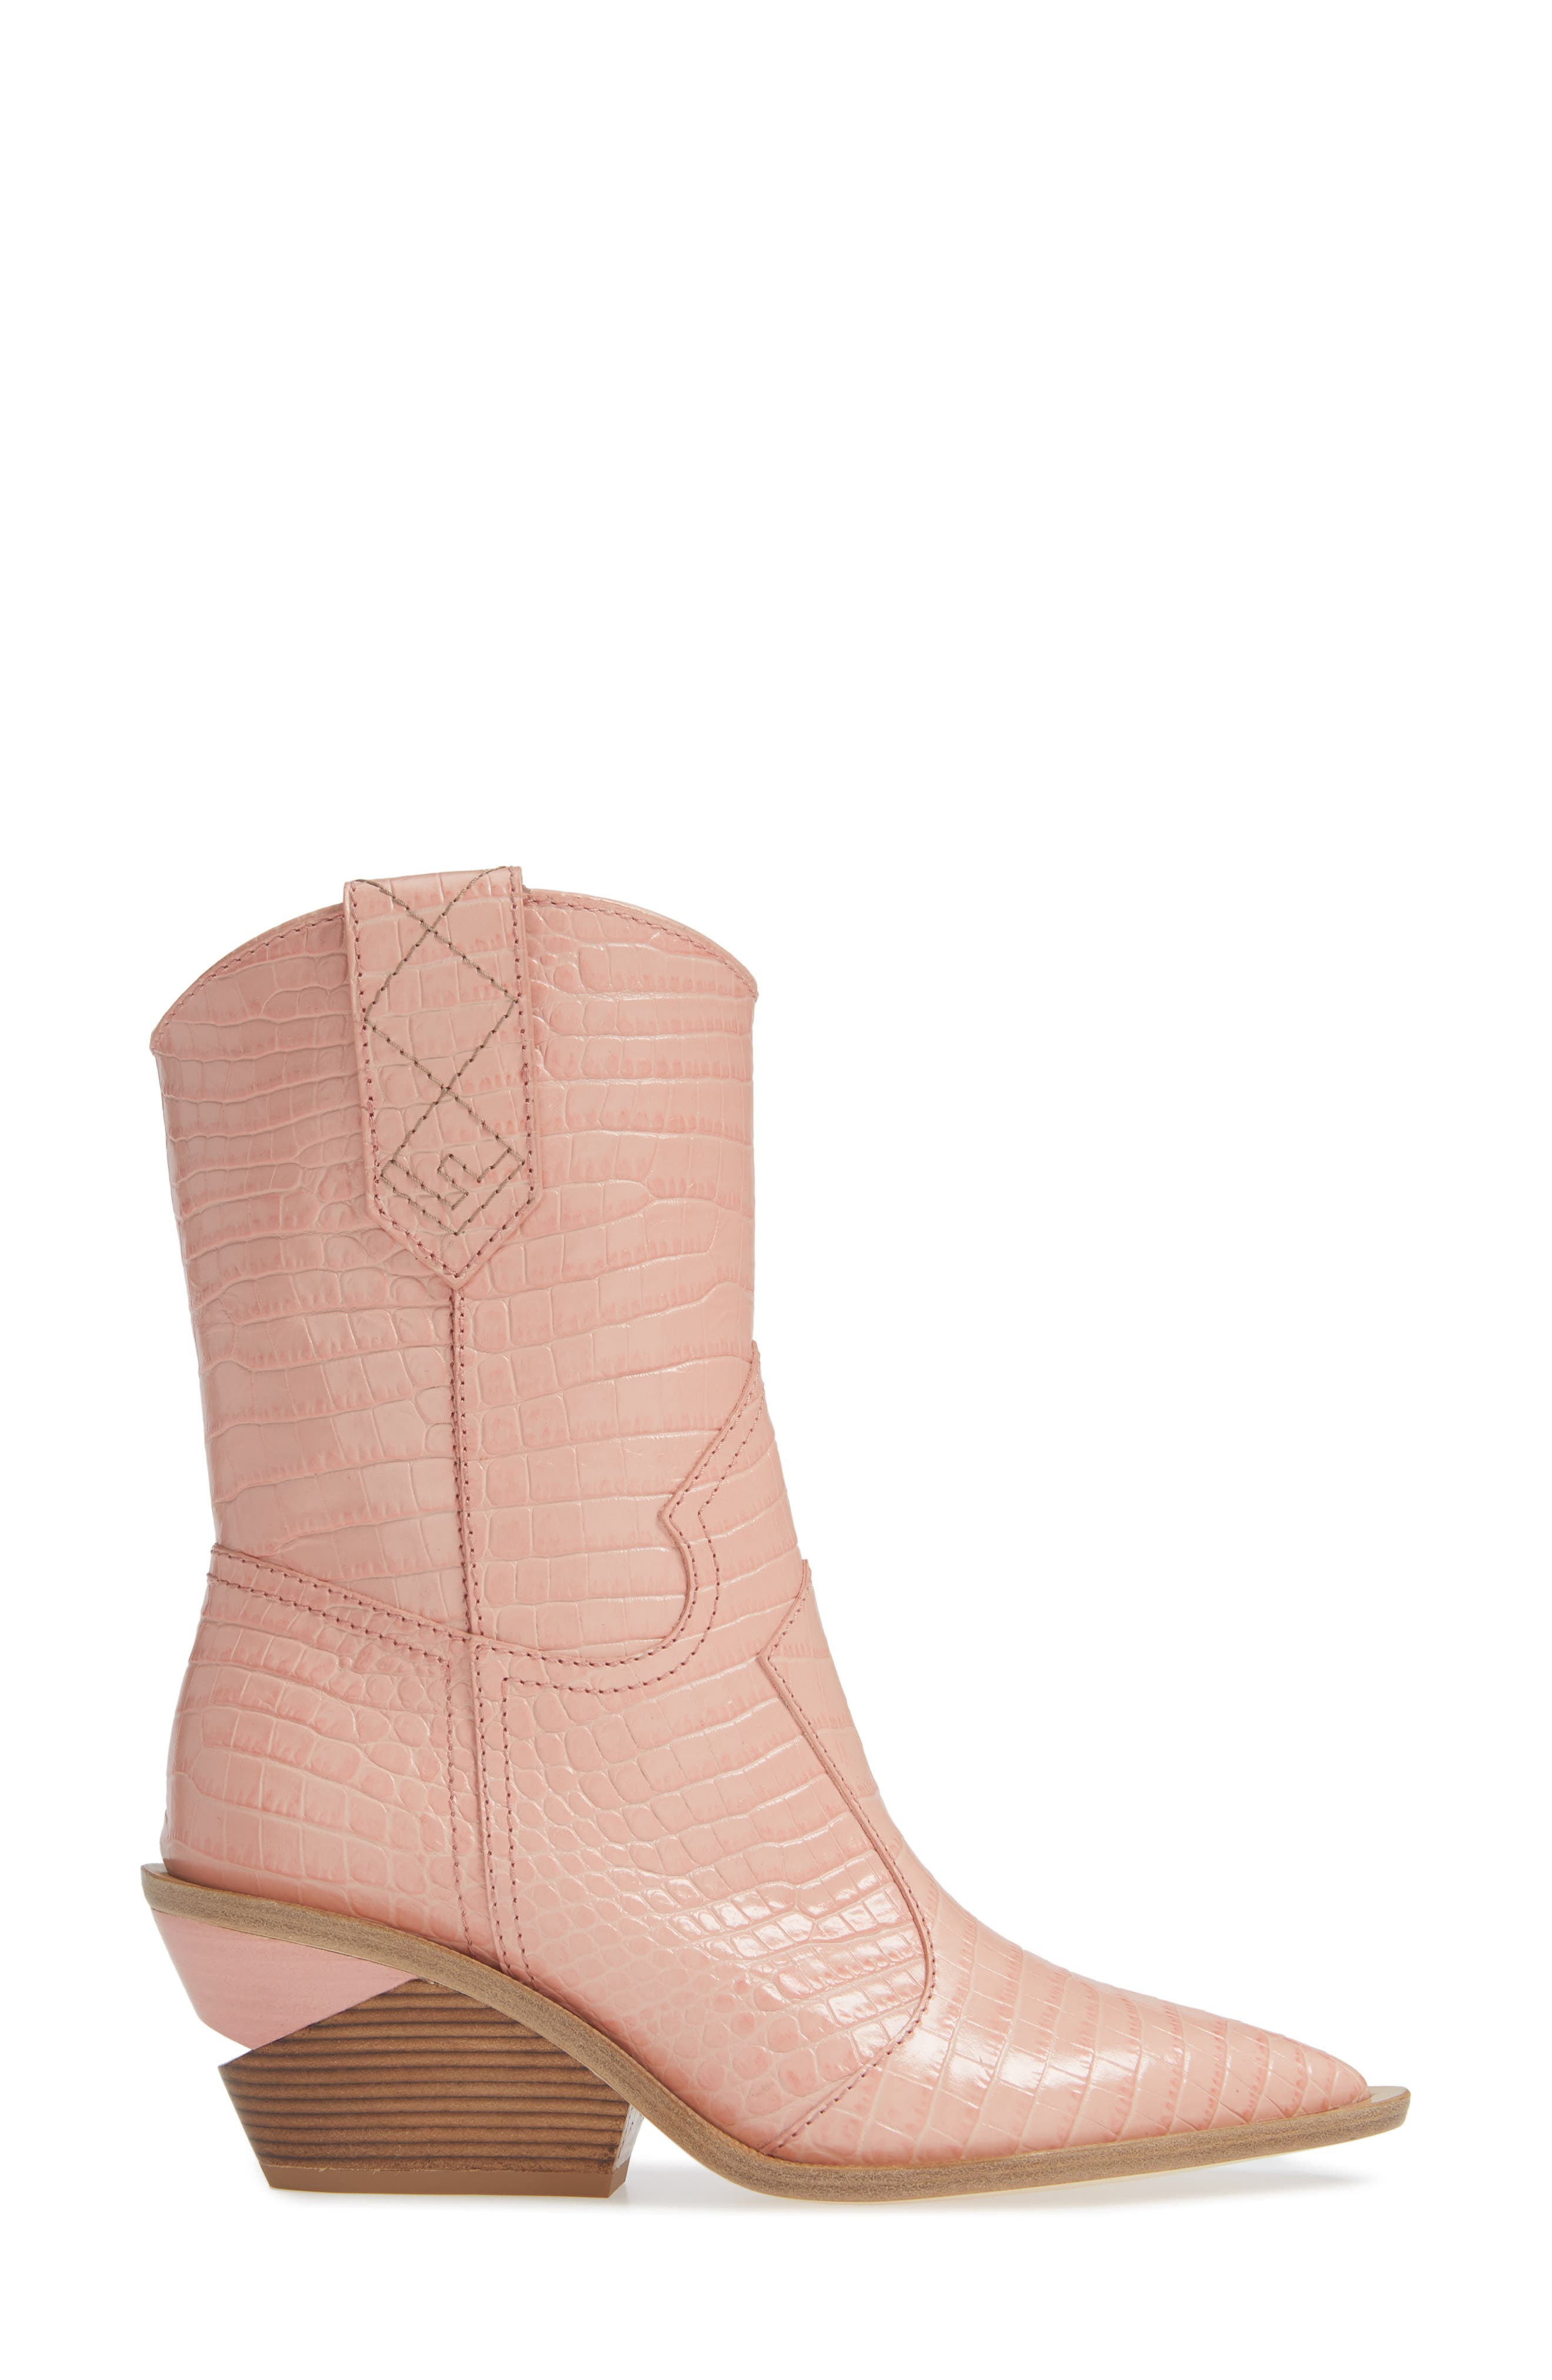 Cutwalk Mid Boot,                             Alternate thumbnail 3, color,                             BABY PINK